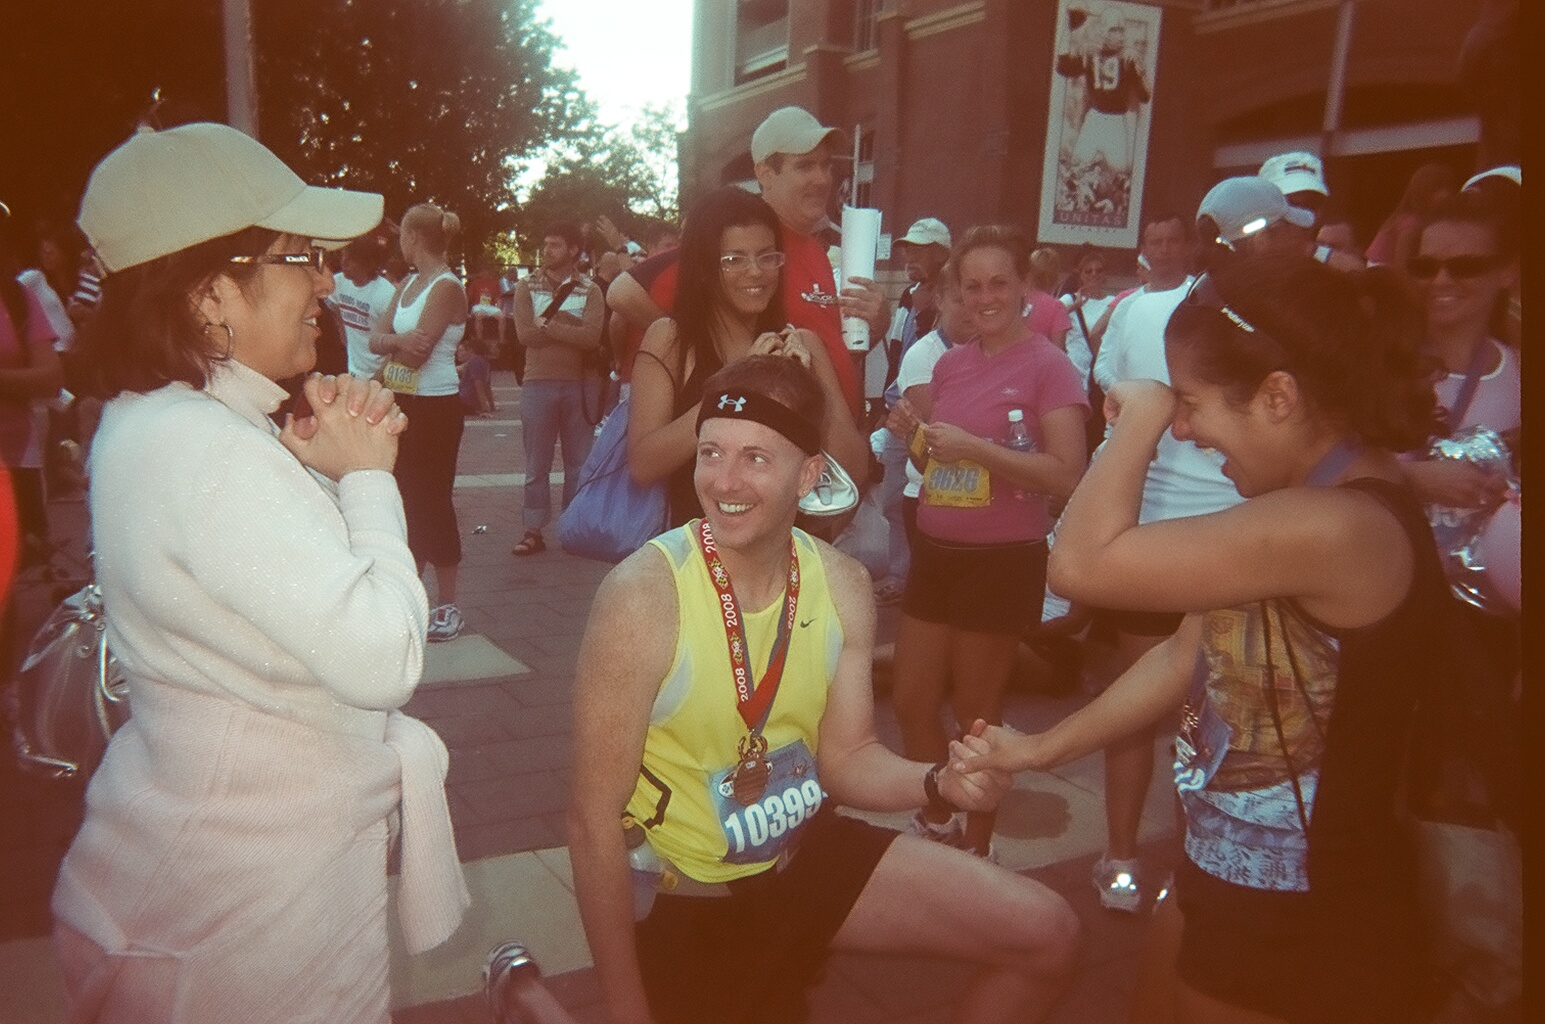 Image 2 of Monica and Steve - Not a Bad Way to Cross The Finish Line...